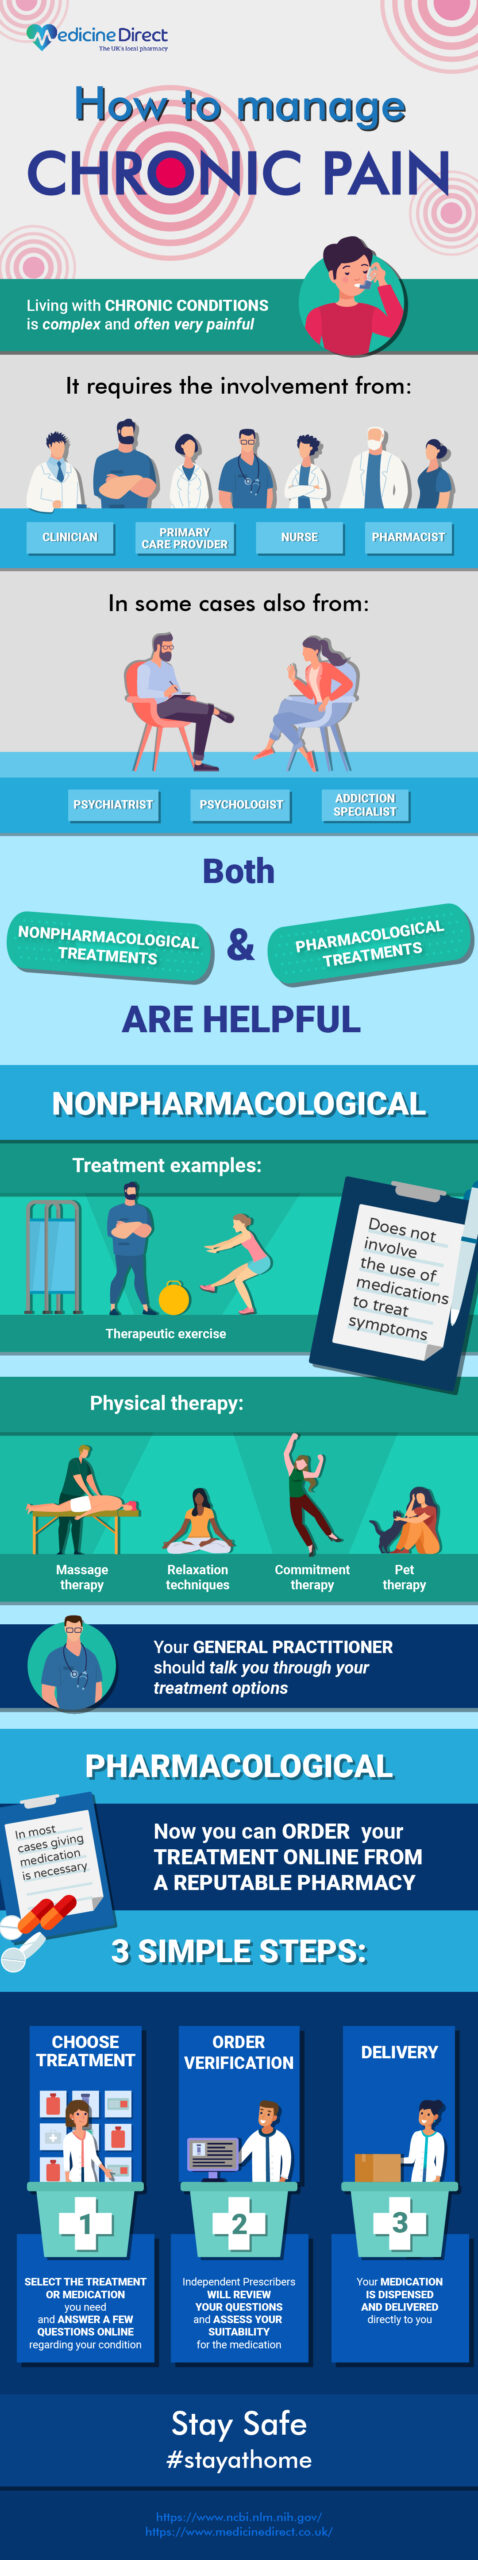 this infographic provided by Medicine Direct helps people managing chronic pain